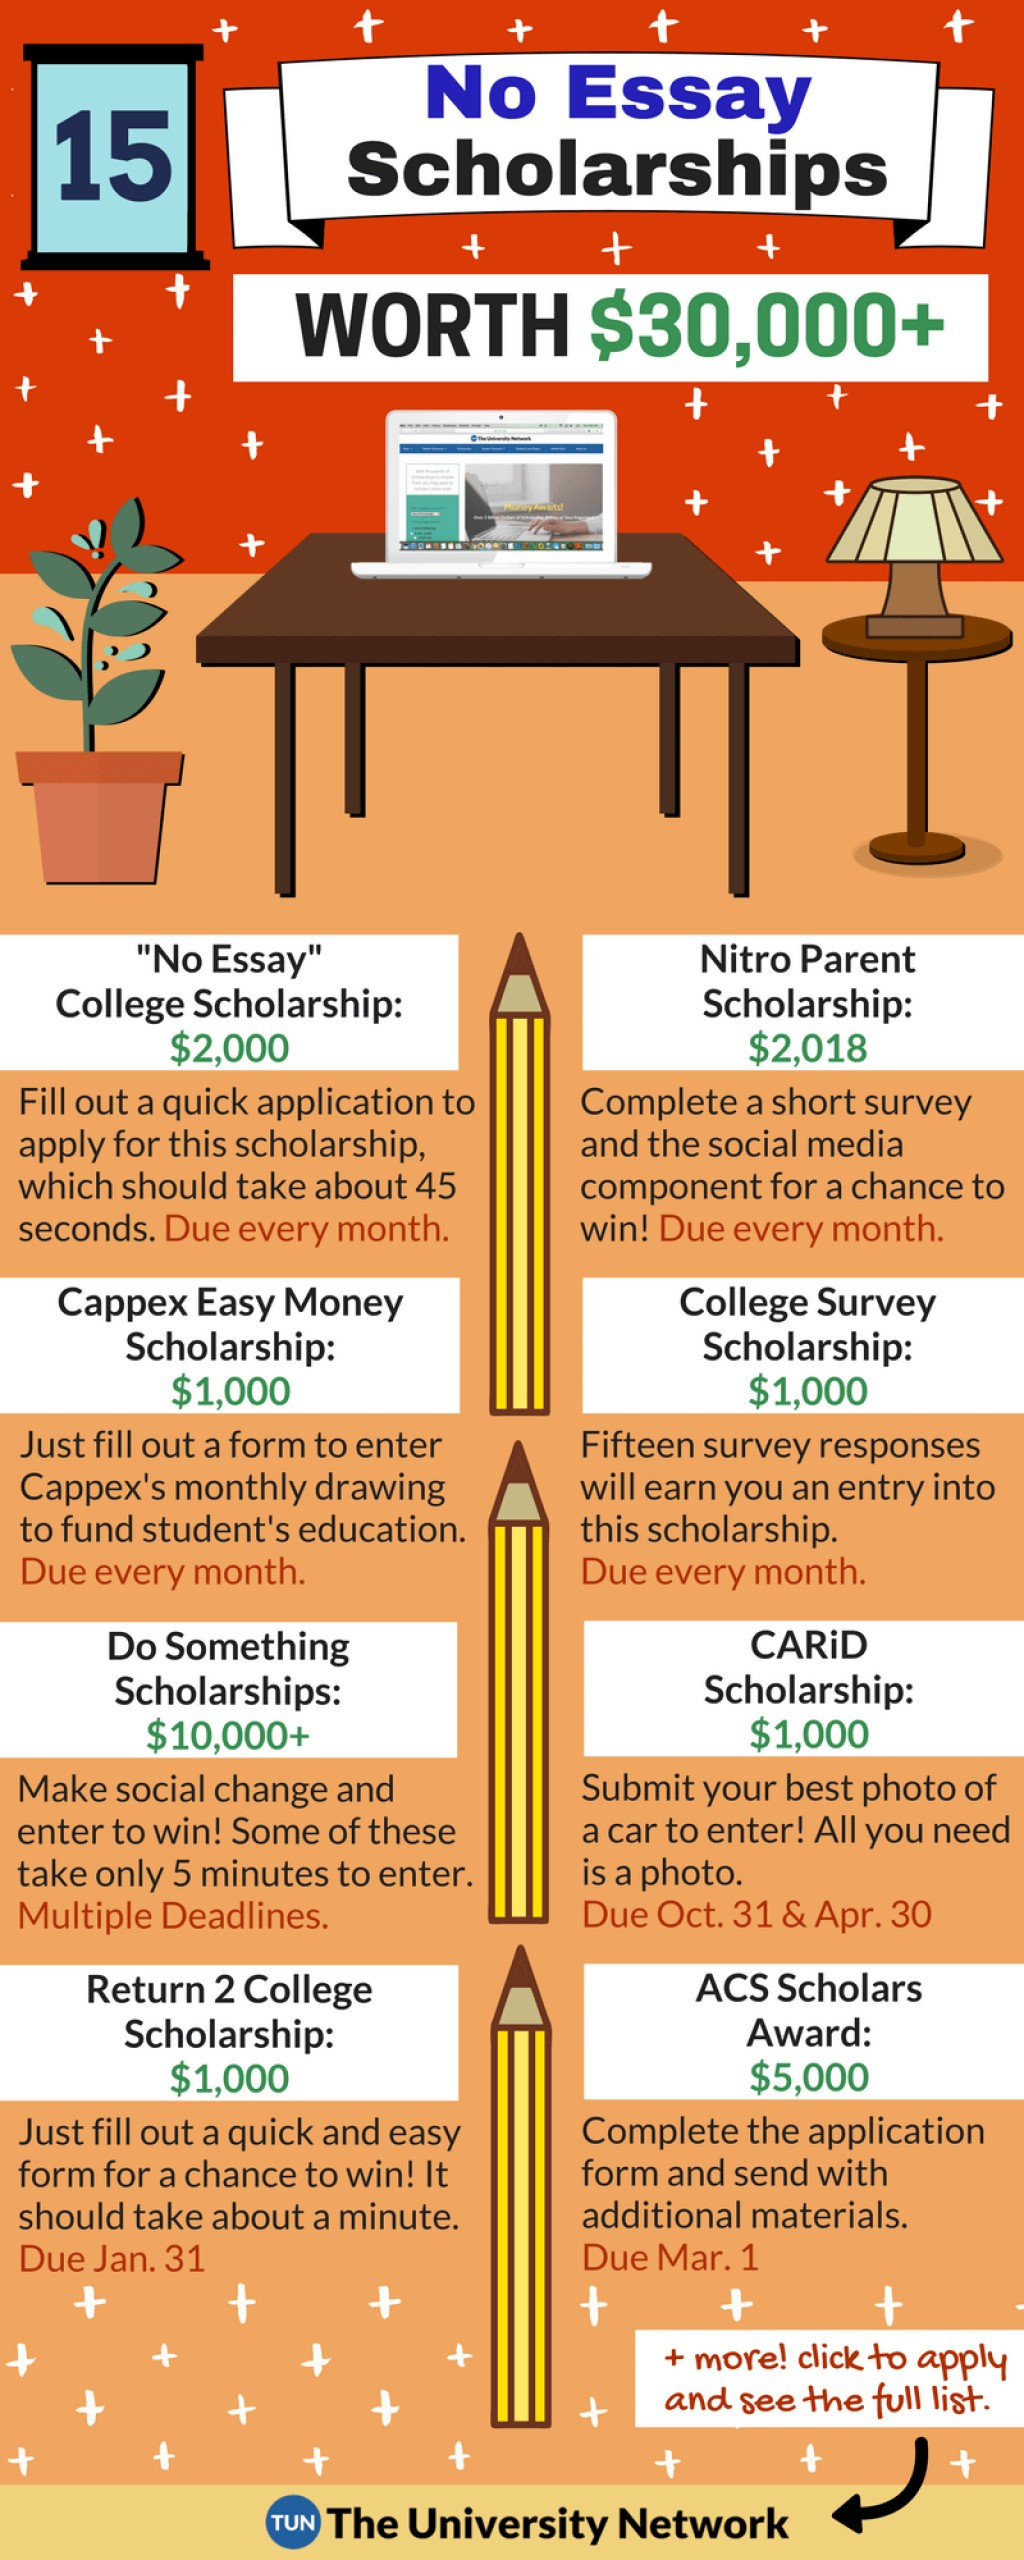 011 No Essay Scholarships For College Students Awful 2019 Large